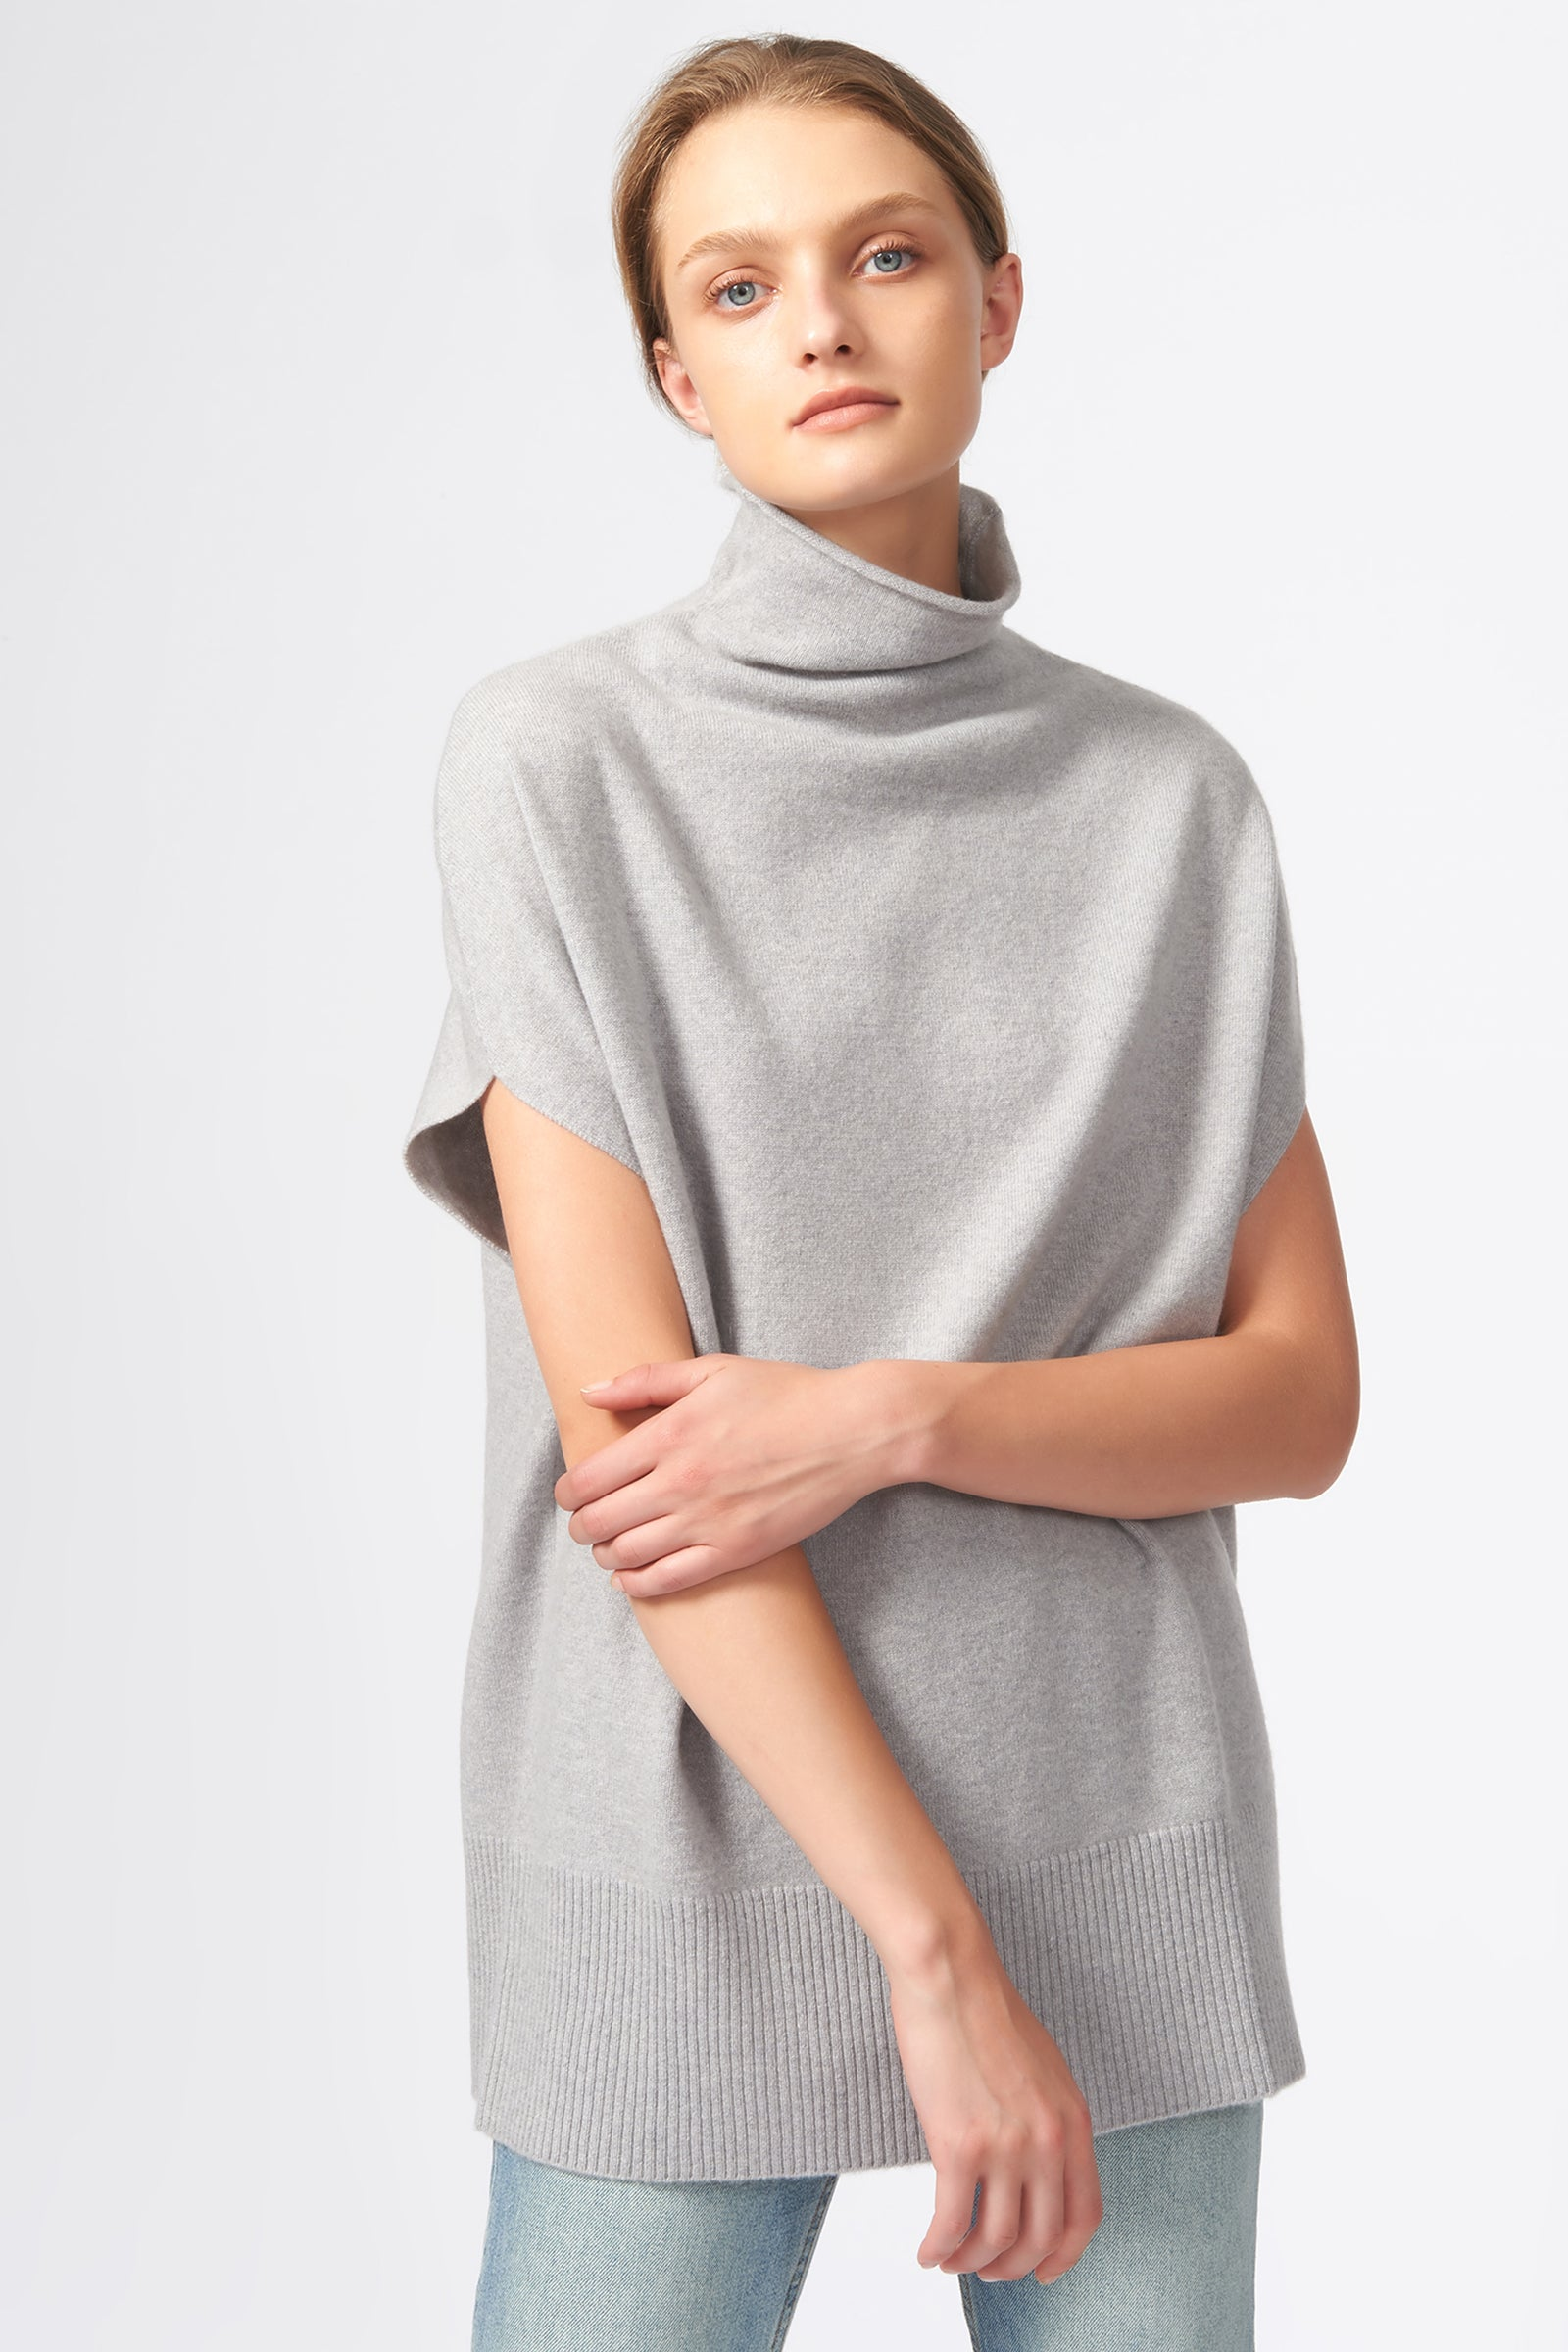 Kal Rieman Cashmere Funnelneck in Heather Grey on Model Front View